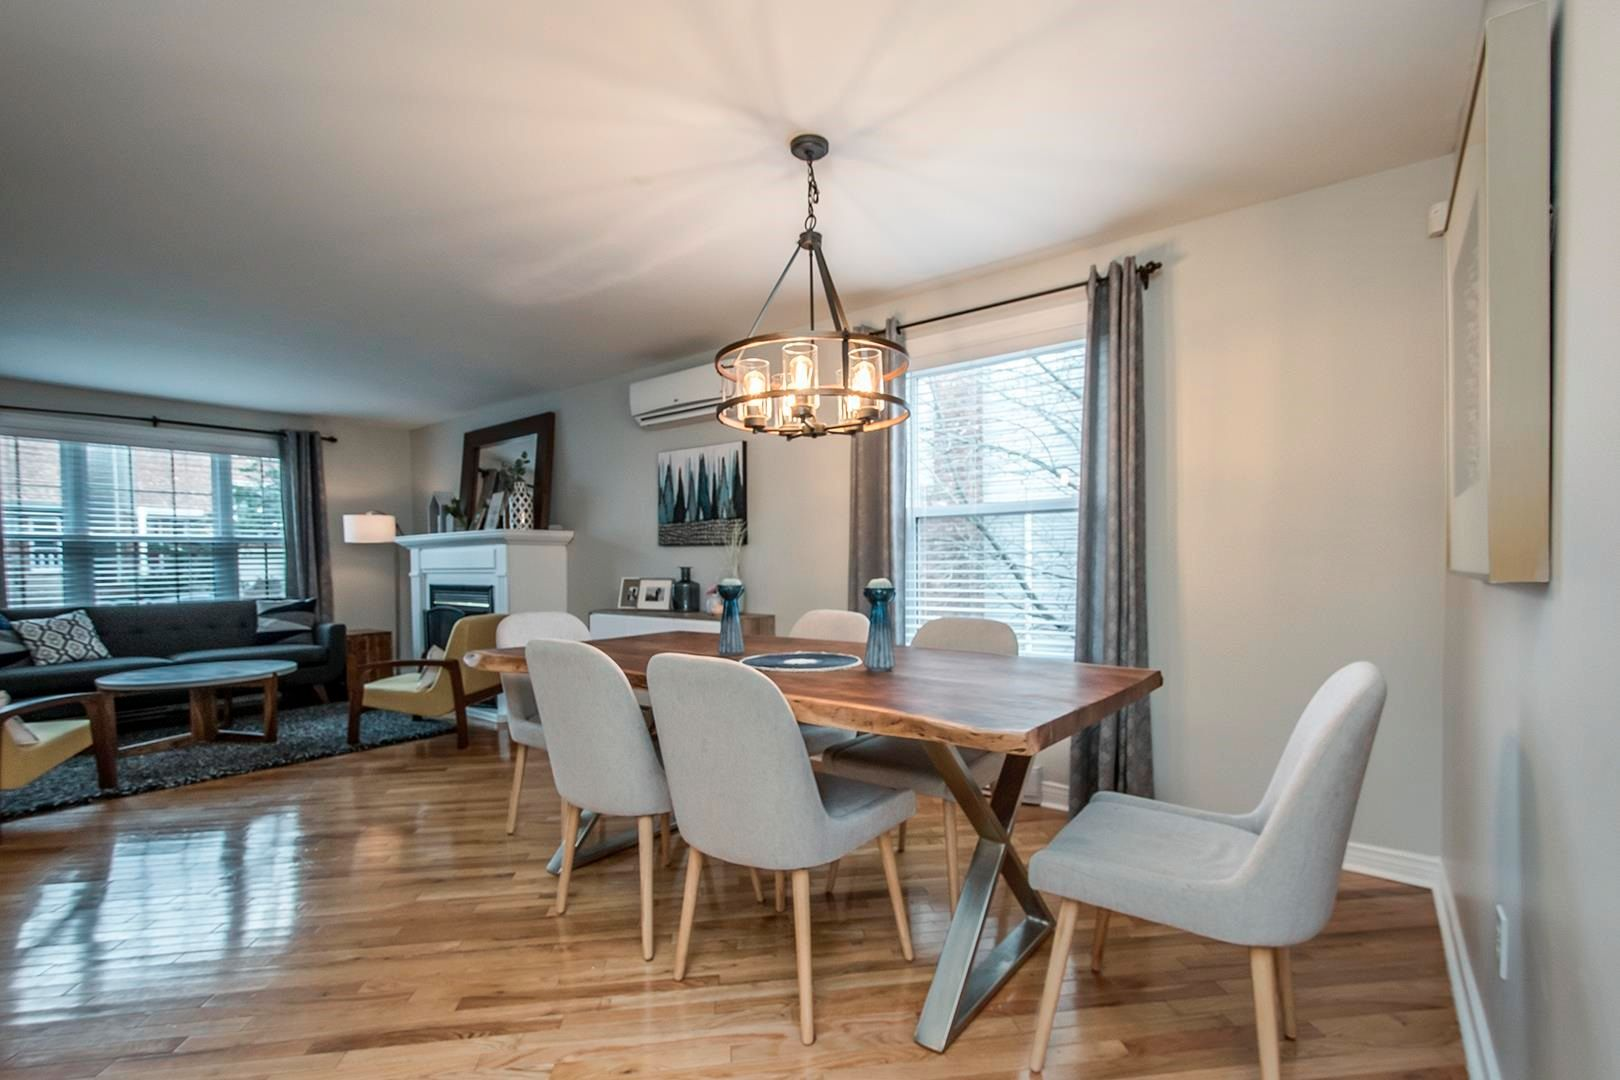 Photo 7: Photos: 64 Roy Crescent in Bedford: 20-Bedford Residential for sale (Halifax-Dartmouth)  : MLS®# 202110846